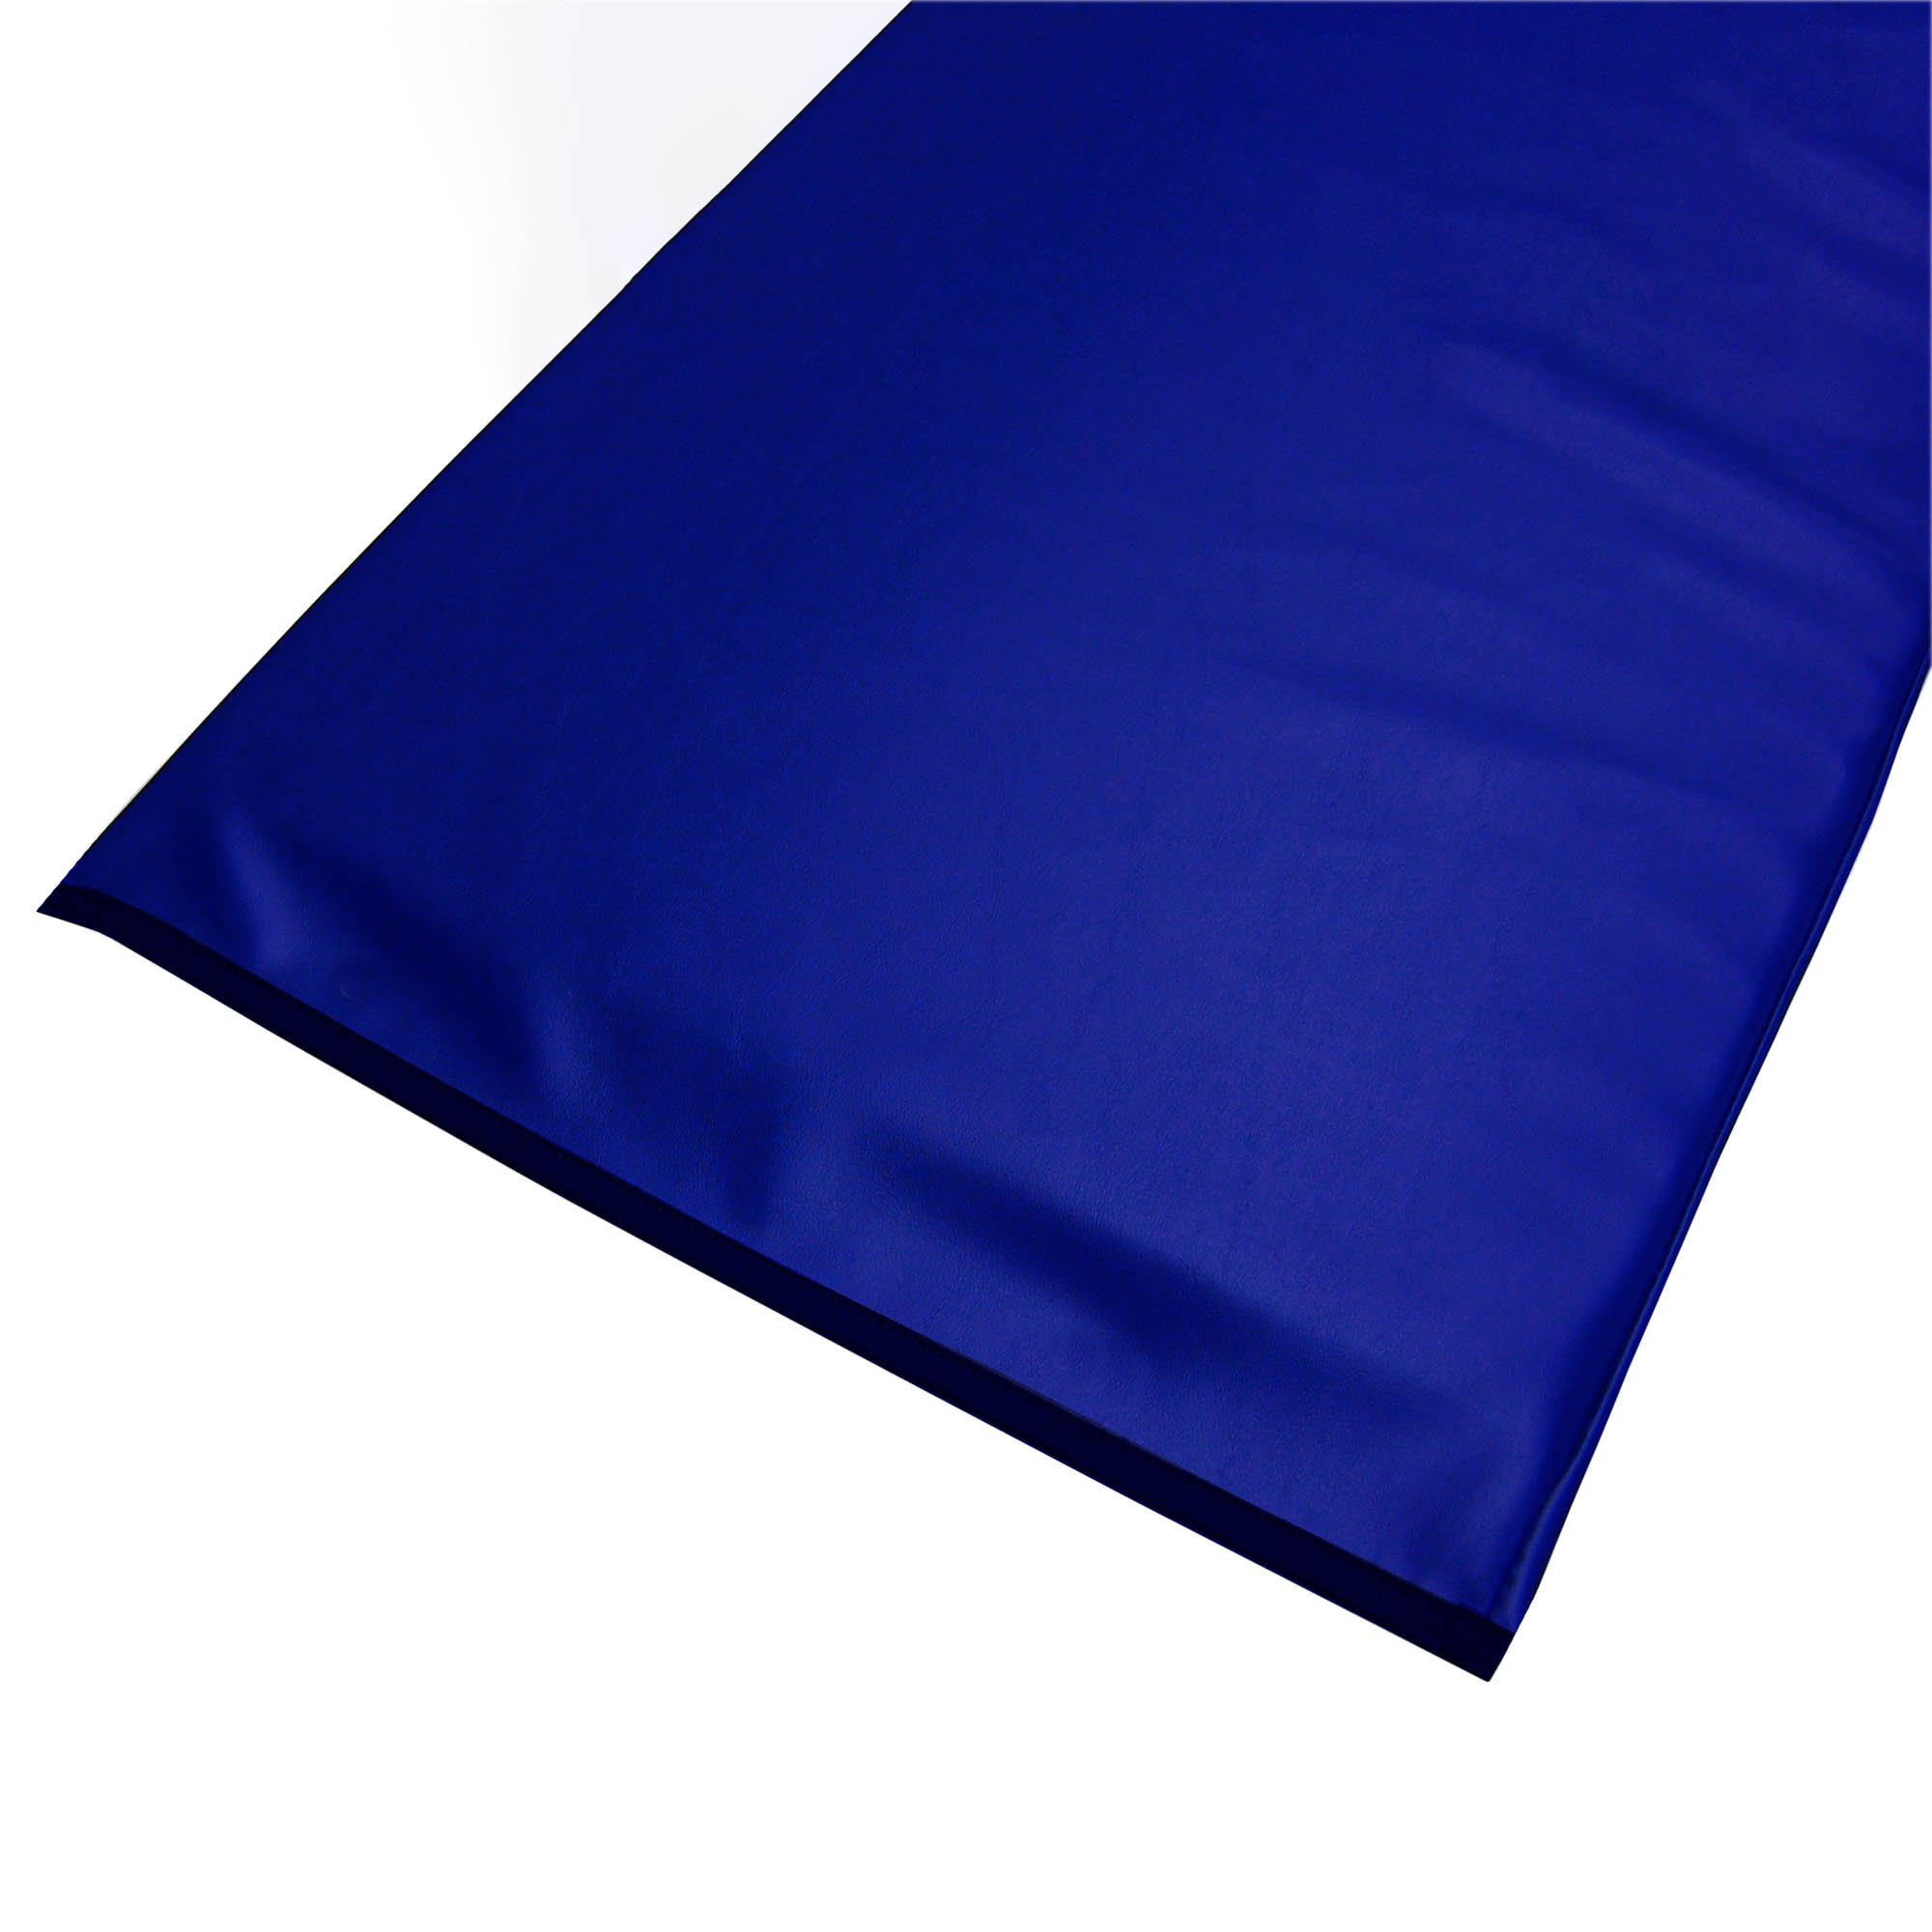 Standard Radiolucent X-Ray Firm Foam Table Pad - Blue Vinyl, No Grommets 72